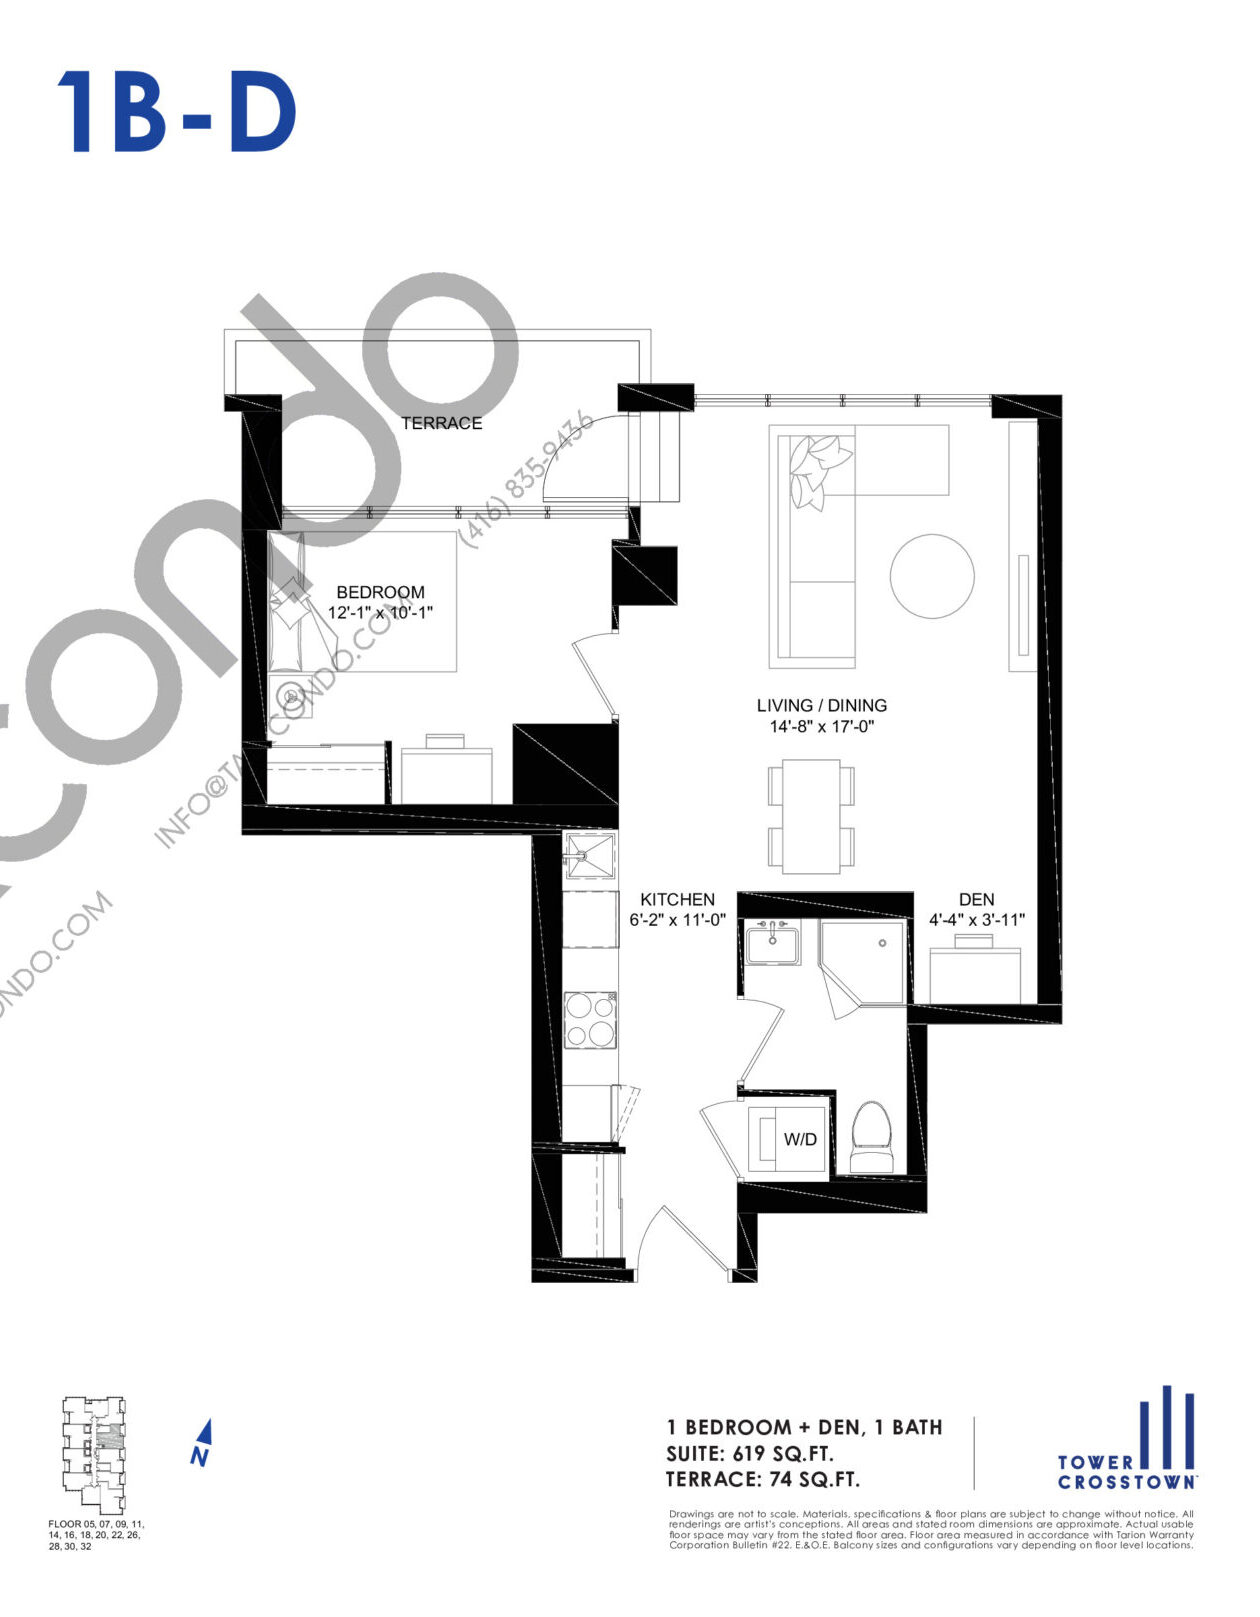 1B-D Floor Plan at Crosstown Tower 3 Condos - 619 sq.ft